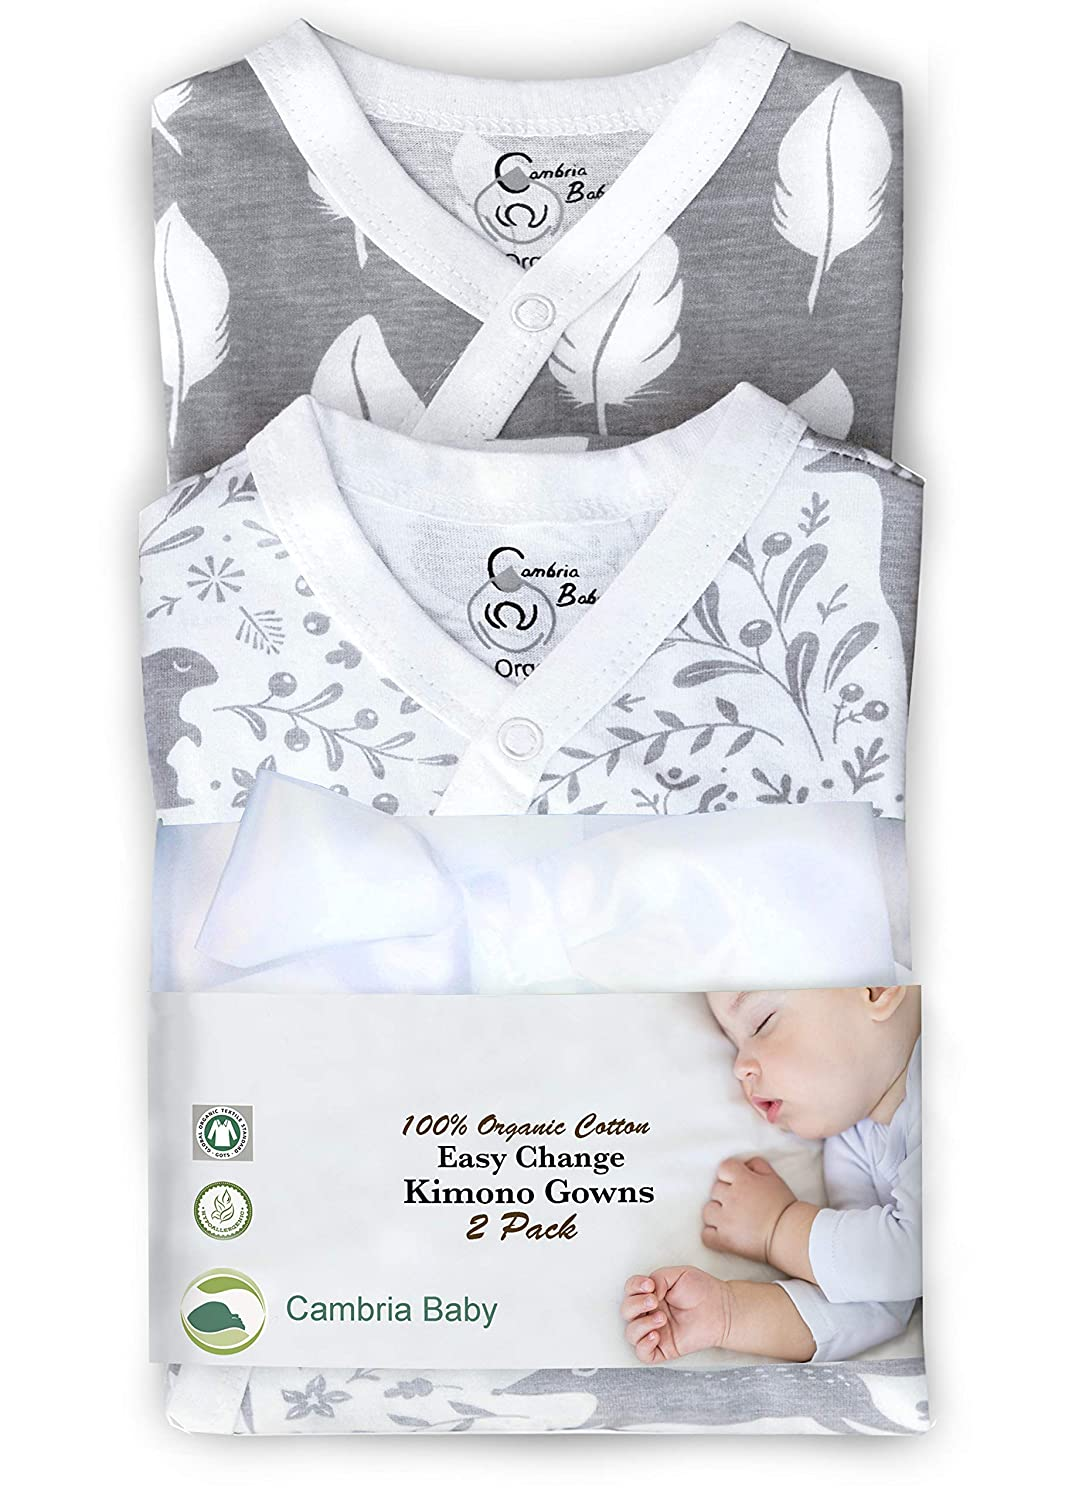 Cambria Baby 100/% Organic Cotton Kimono Gowns 2 Pk Elephant and Waves, 0-3 Mo Easy Change with Built in Mitts